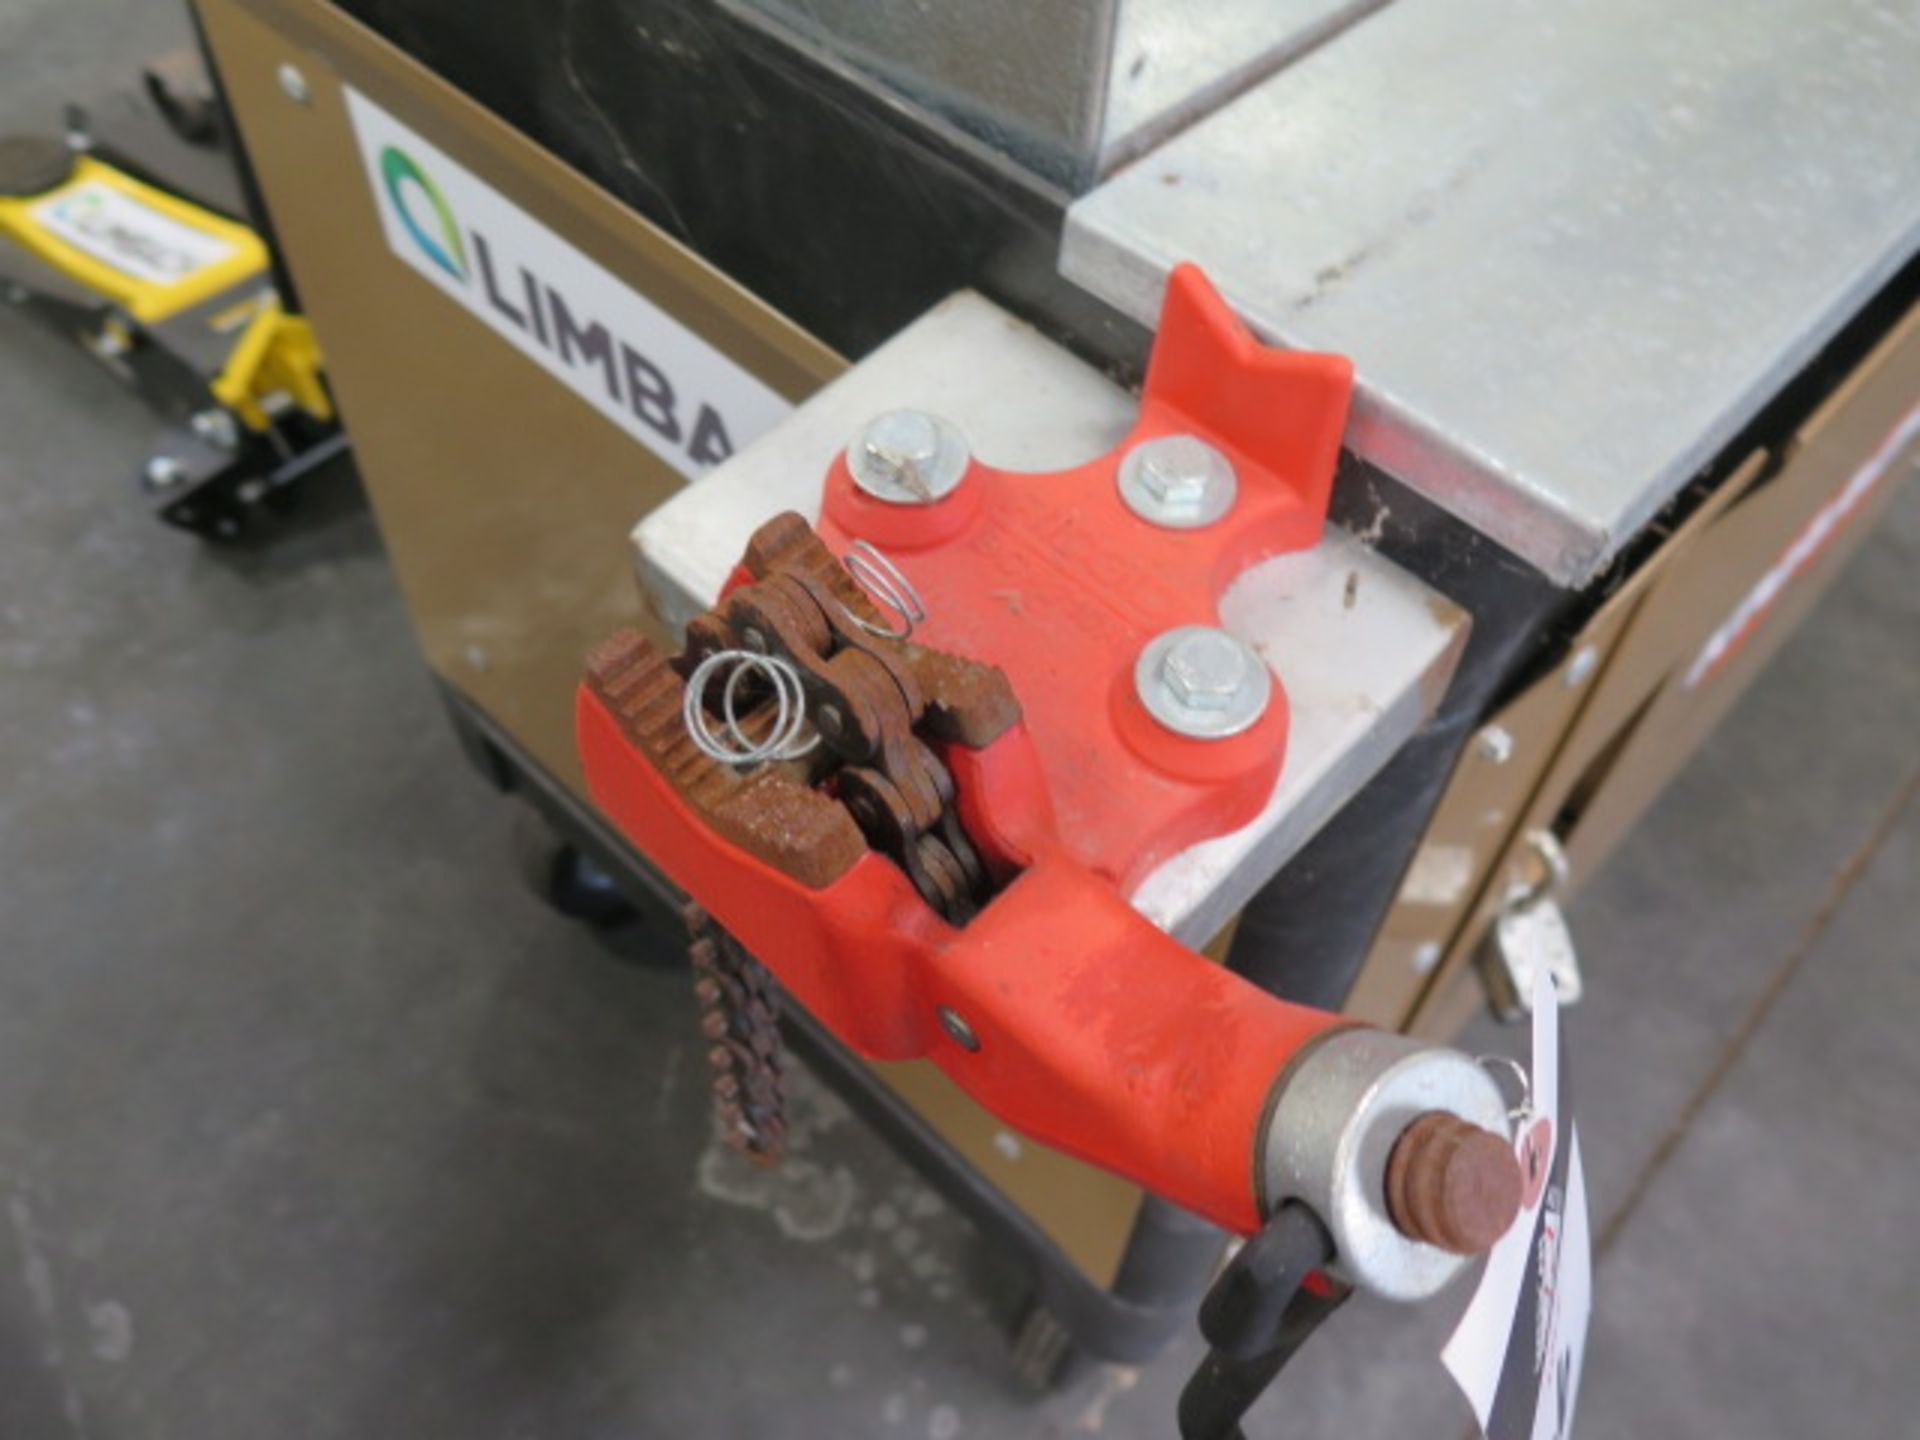 """Knaack """"Cart Armour"""" Job Cart w/ Top Box and Ridgid Pipe Vise (SOLD AS-IS - NO WARRANTY) - Image 4 of 7"""